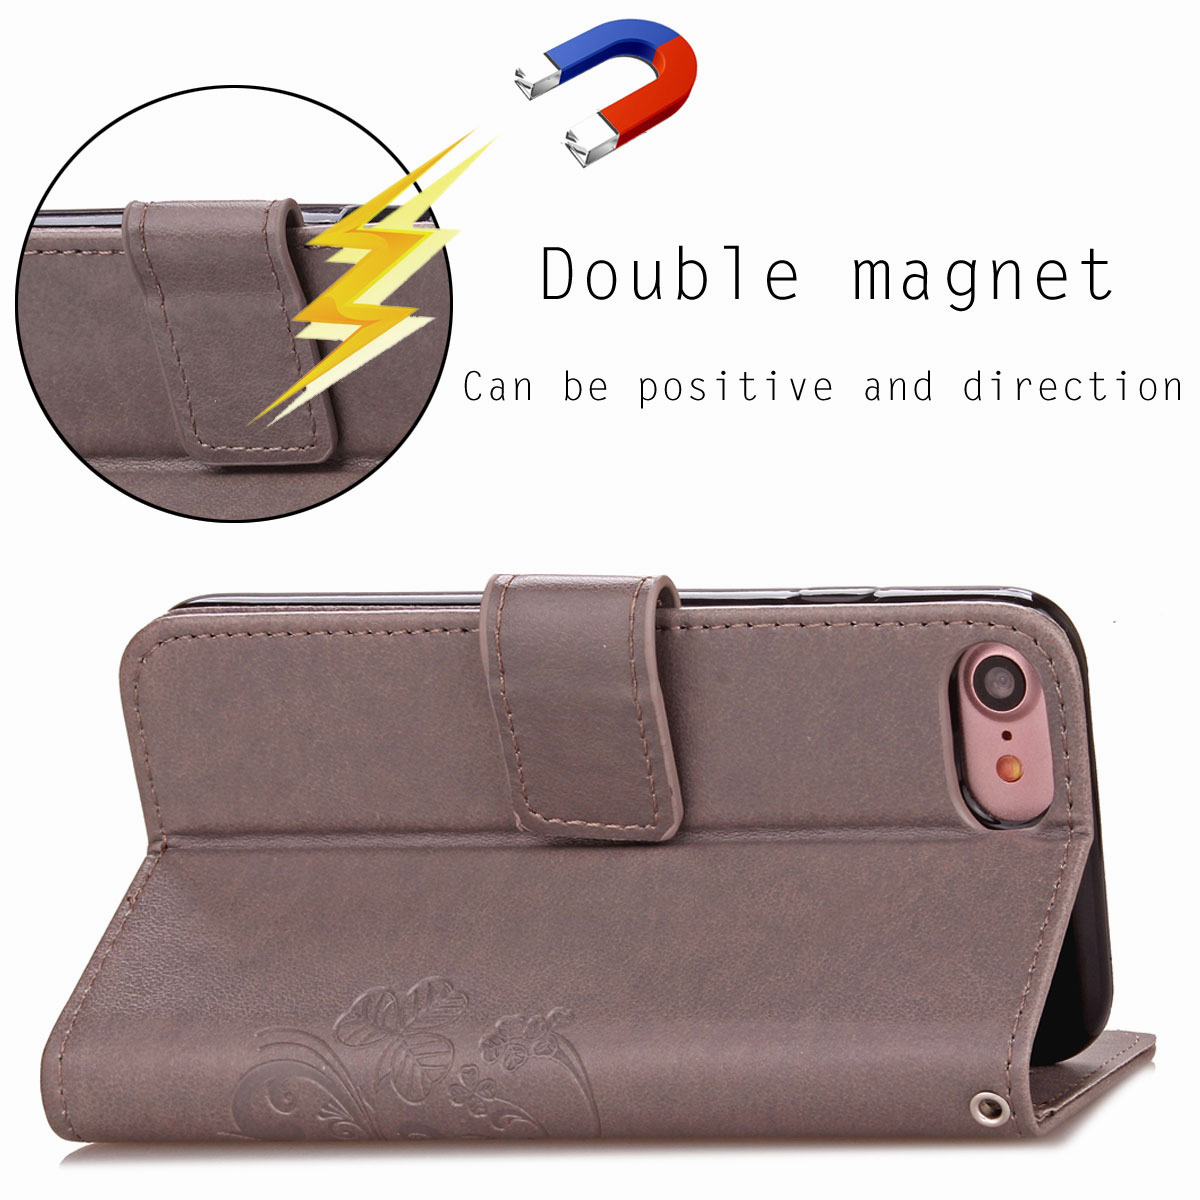 For-Apple-iPhone-Phones-Soft-Leather-Magnetic-Wallet-Card-Holder-Sim-Case-Cover thumbnail 34